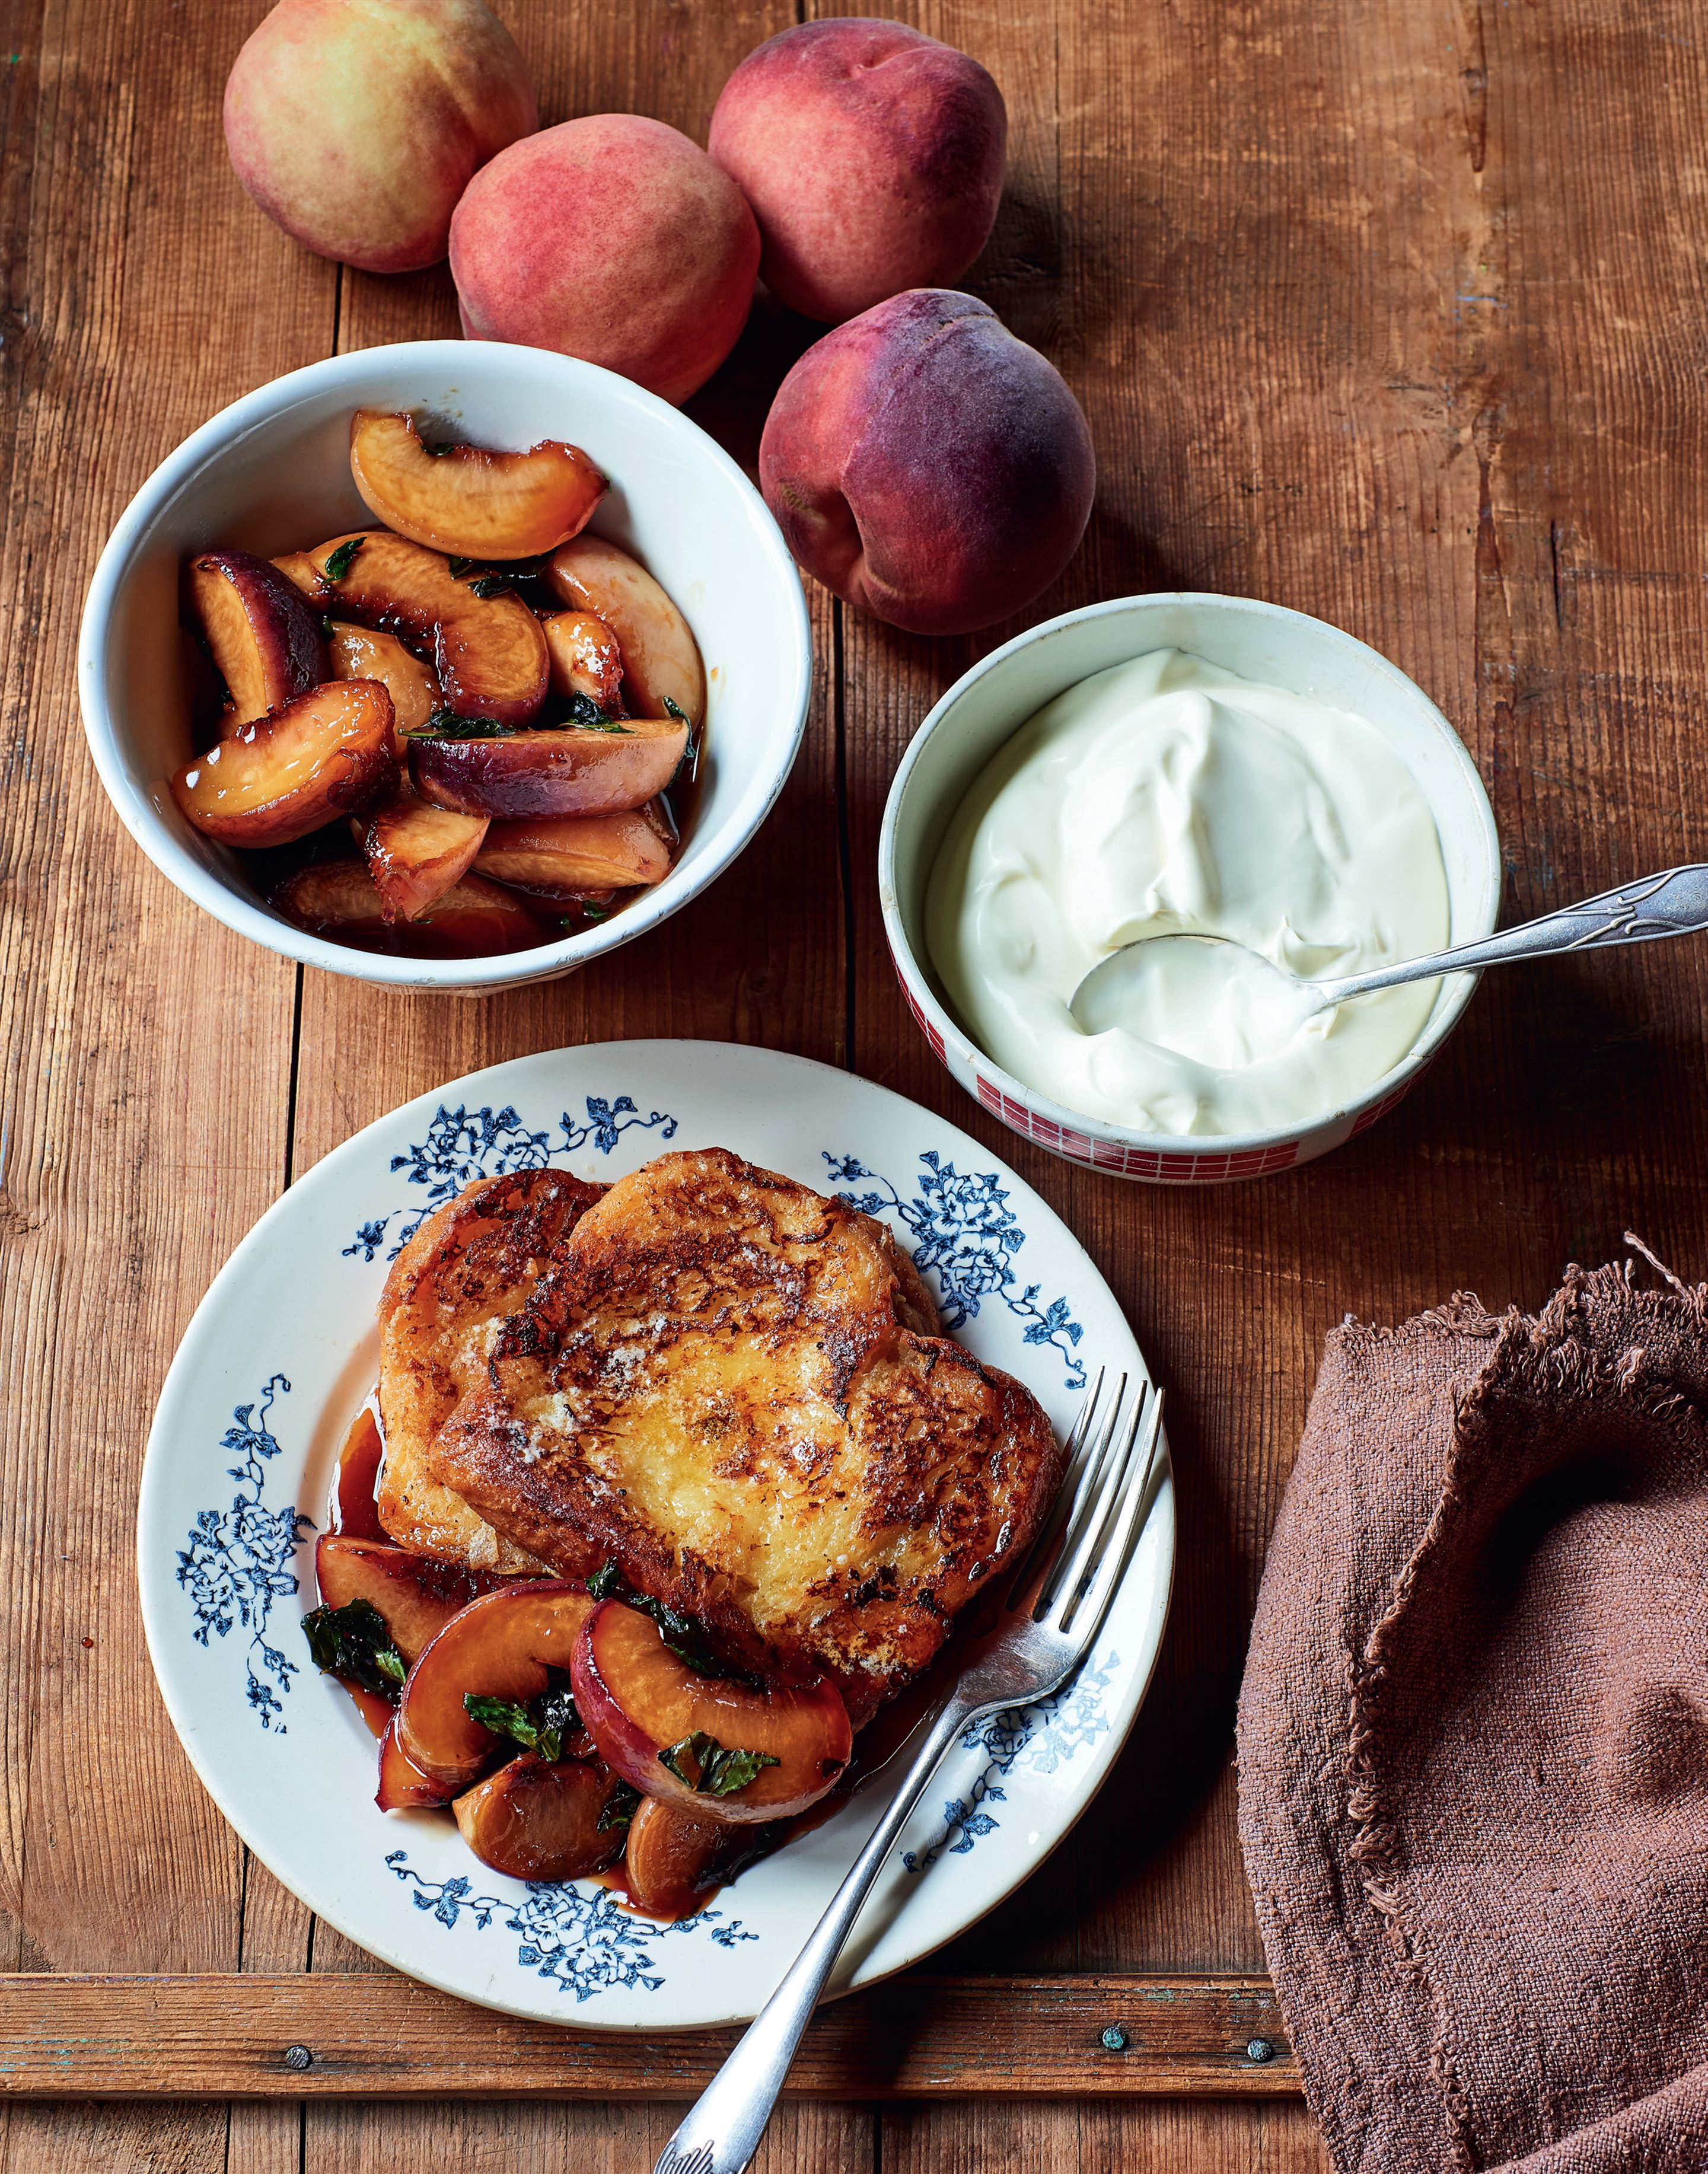 Peach & basil pain perdu